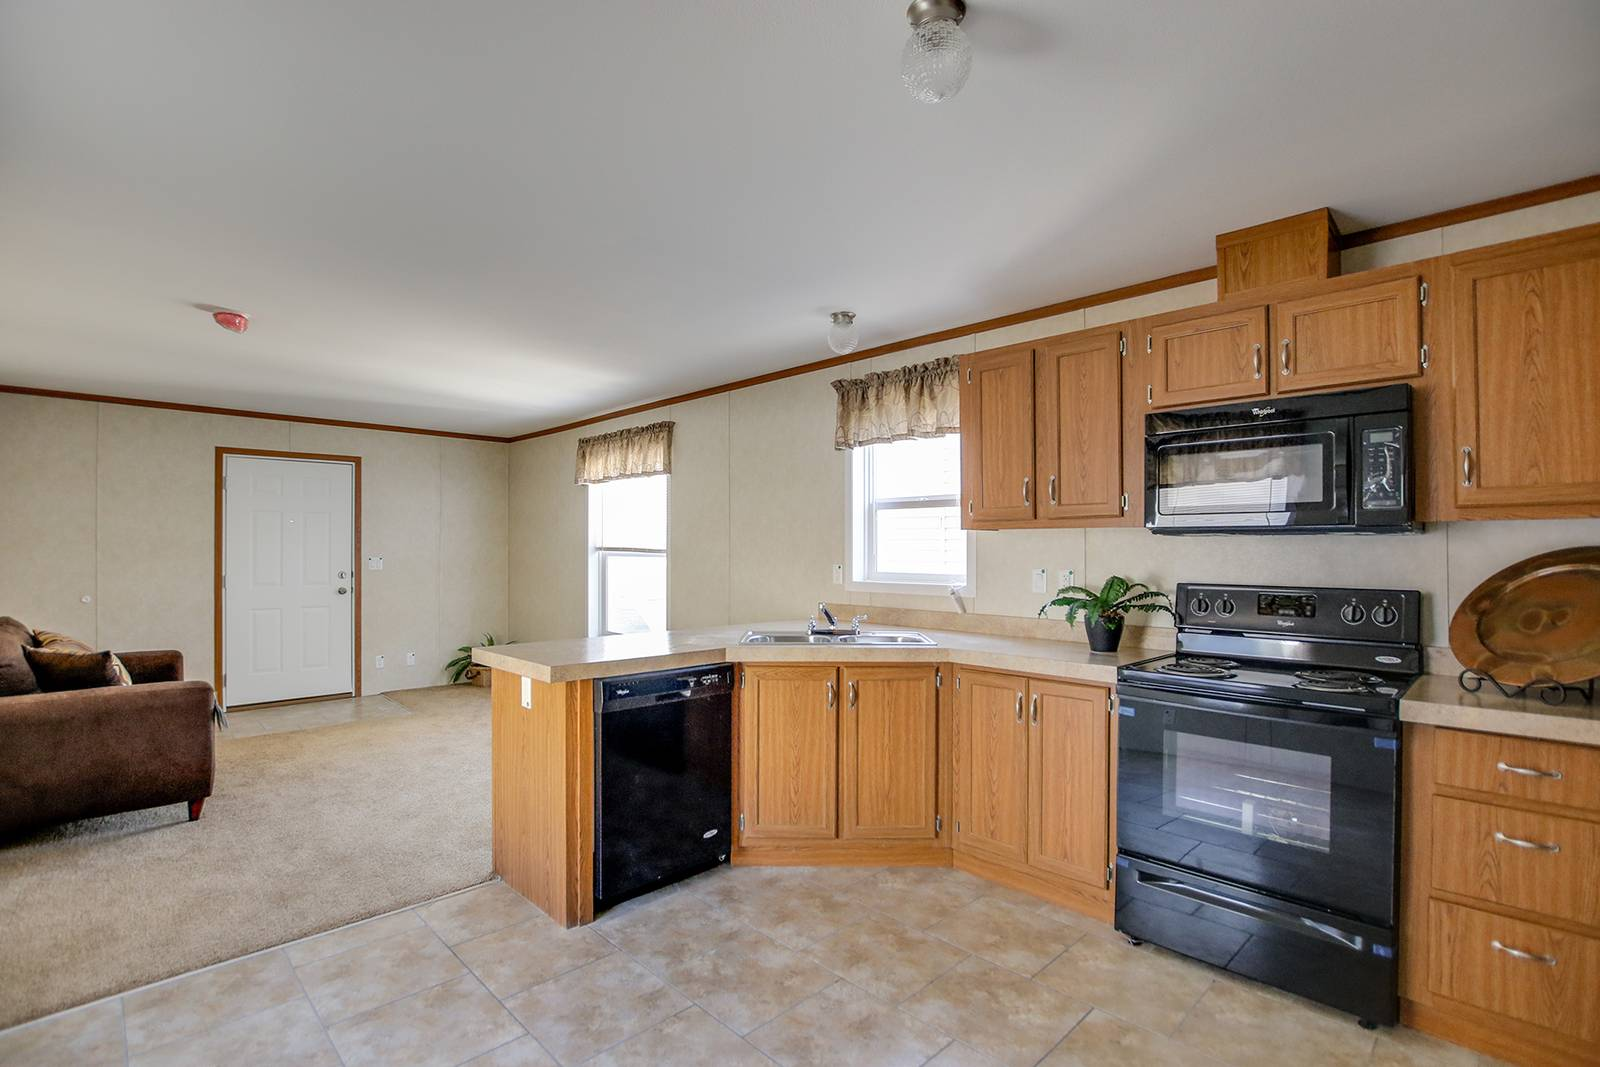 Carefree Homes In Salt Lake City Ut Manufactured Home